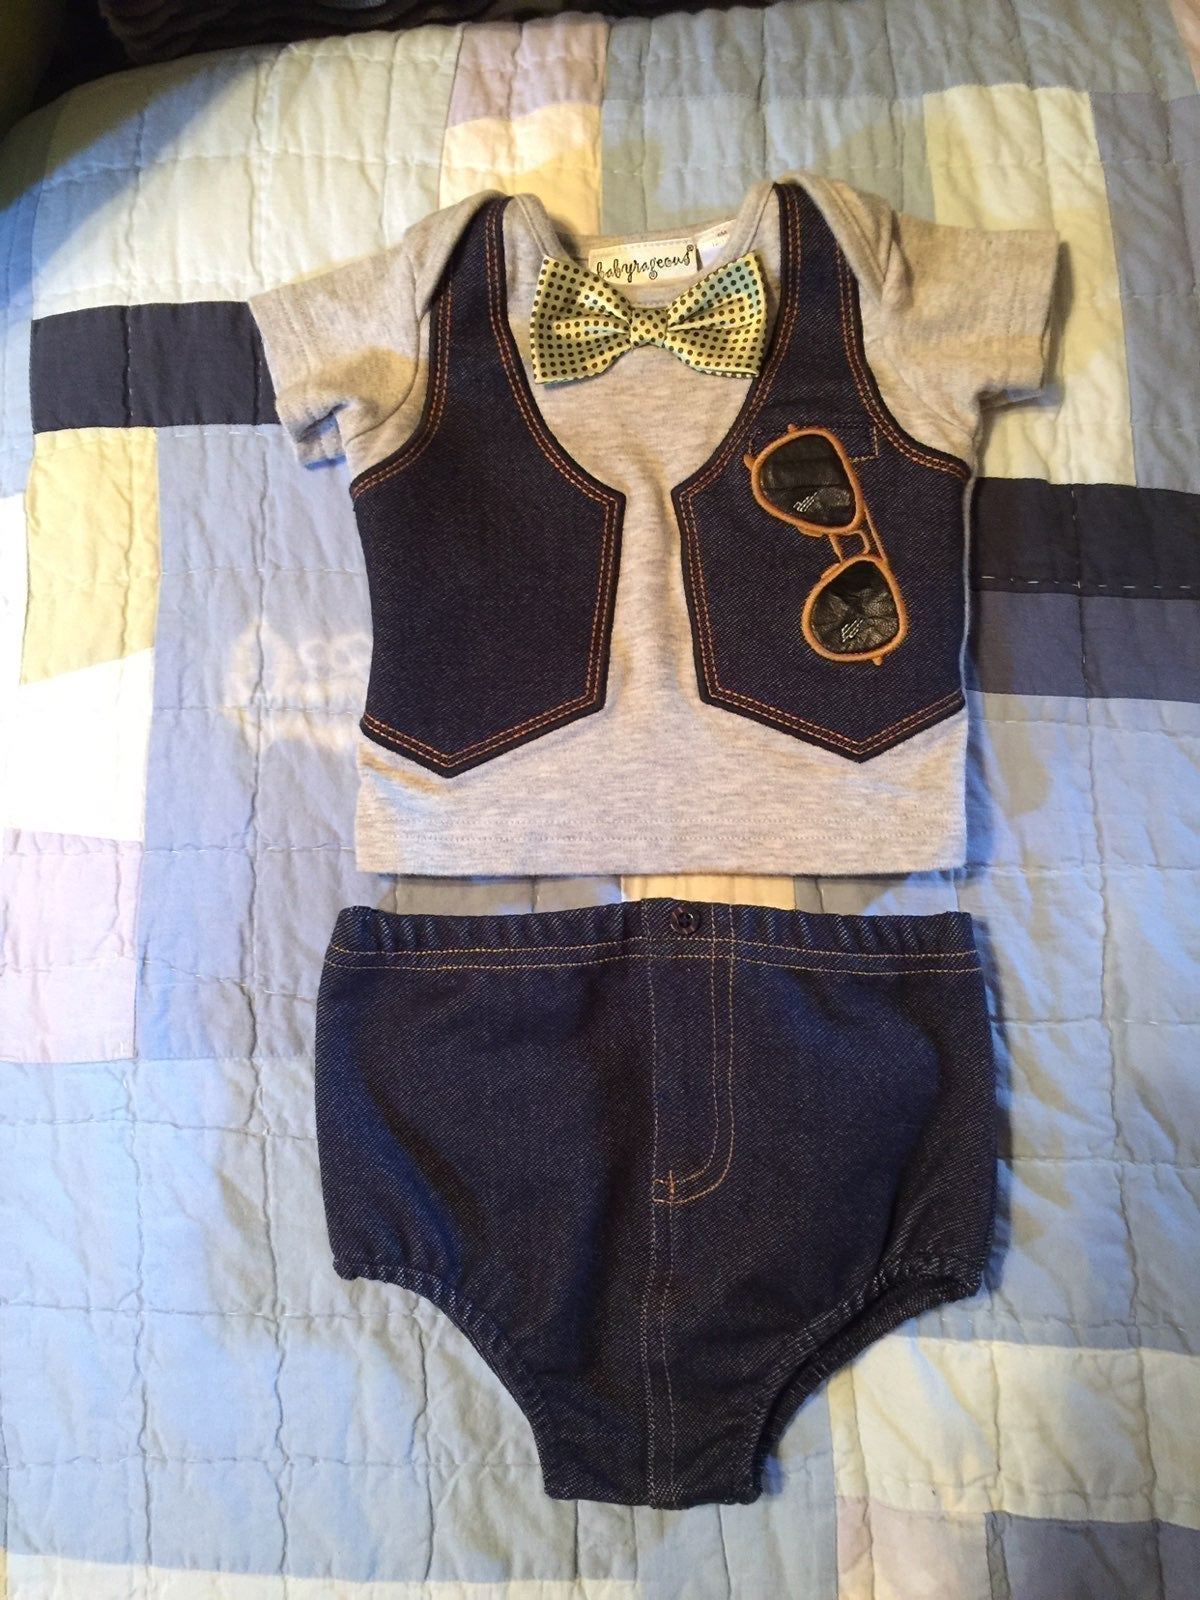 Babyrageous 6M Top w/ jean diaper cover